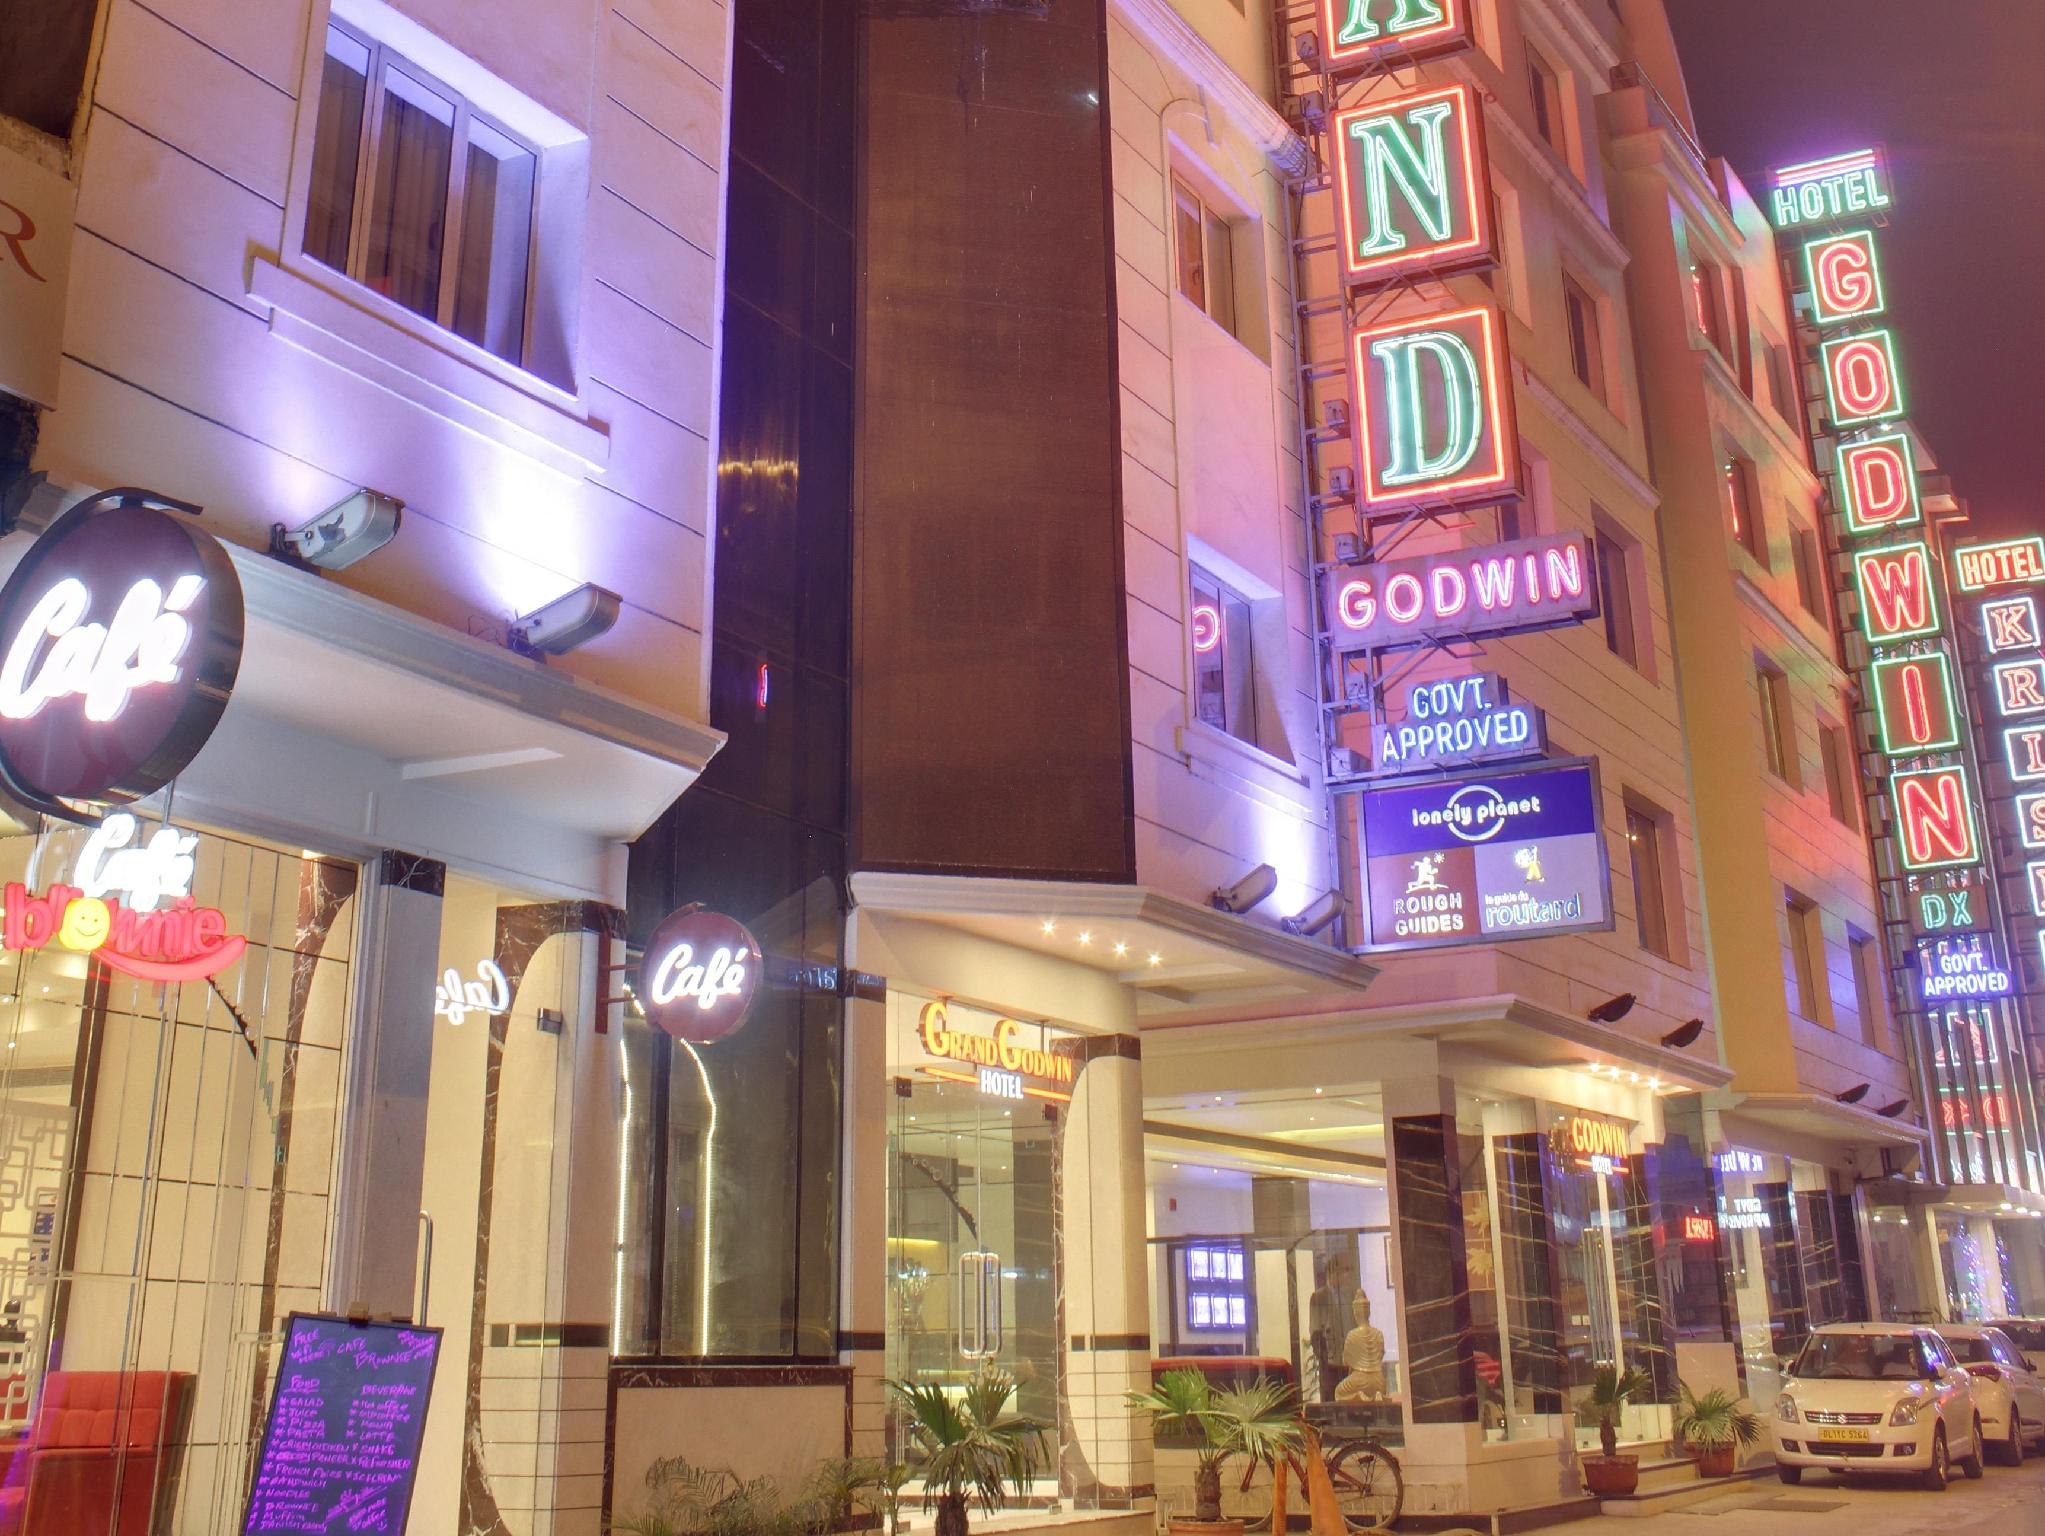 Hotel Grand Godwin New Delhi and NCR - Hotel Exterior